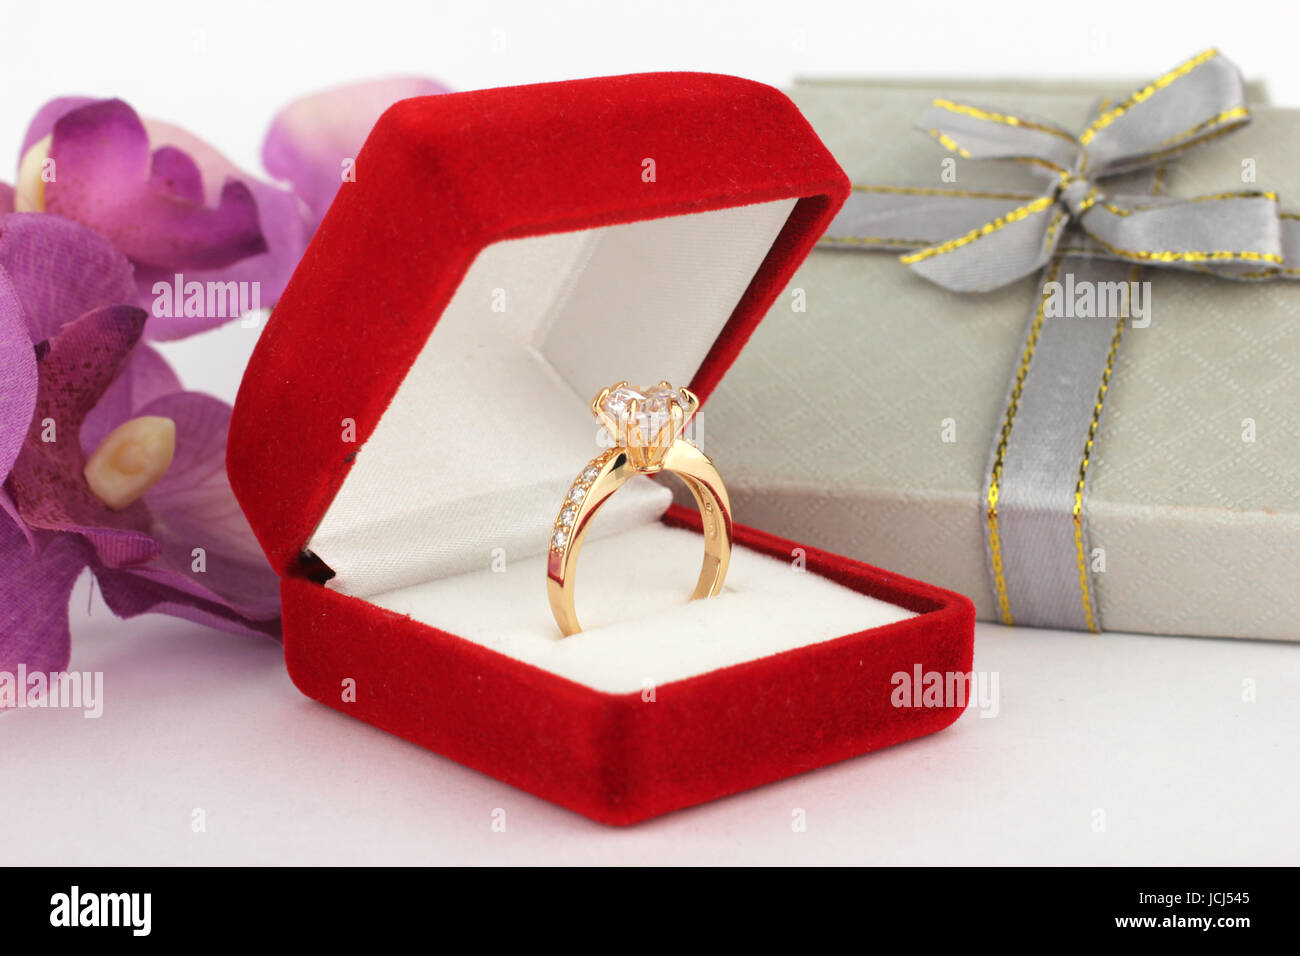 ring in jewelry box , flower background - Stock Image